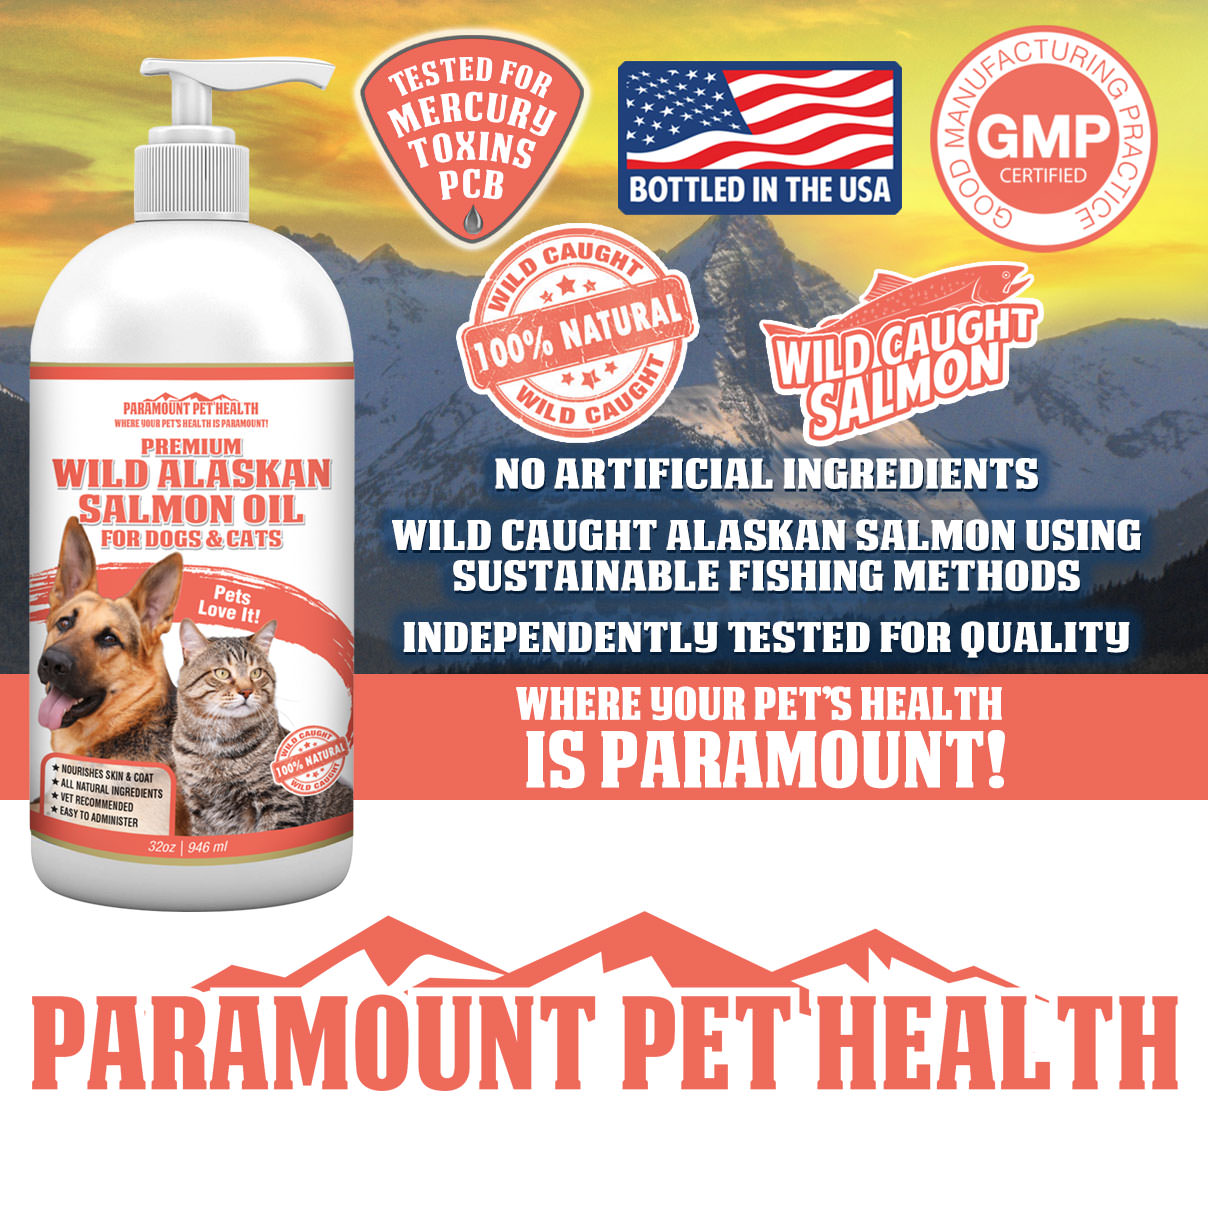 Wild Alaskan Salmon Oil for Dogs and Cats Mercury Tested